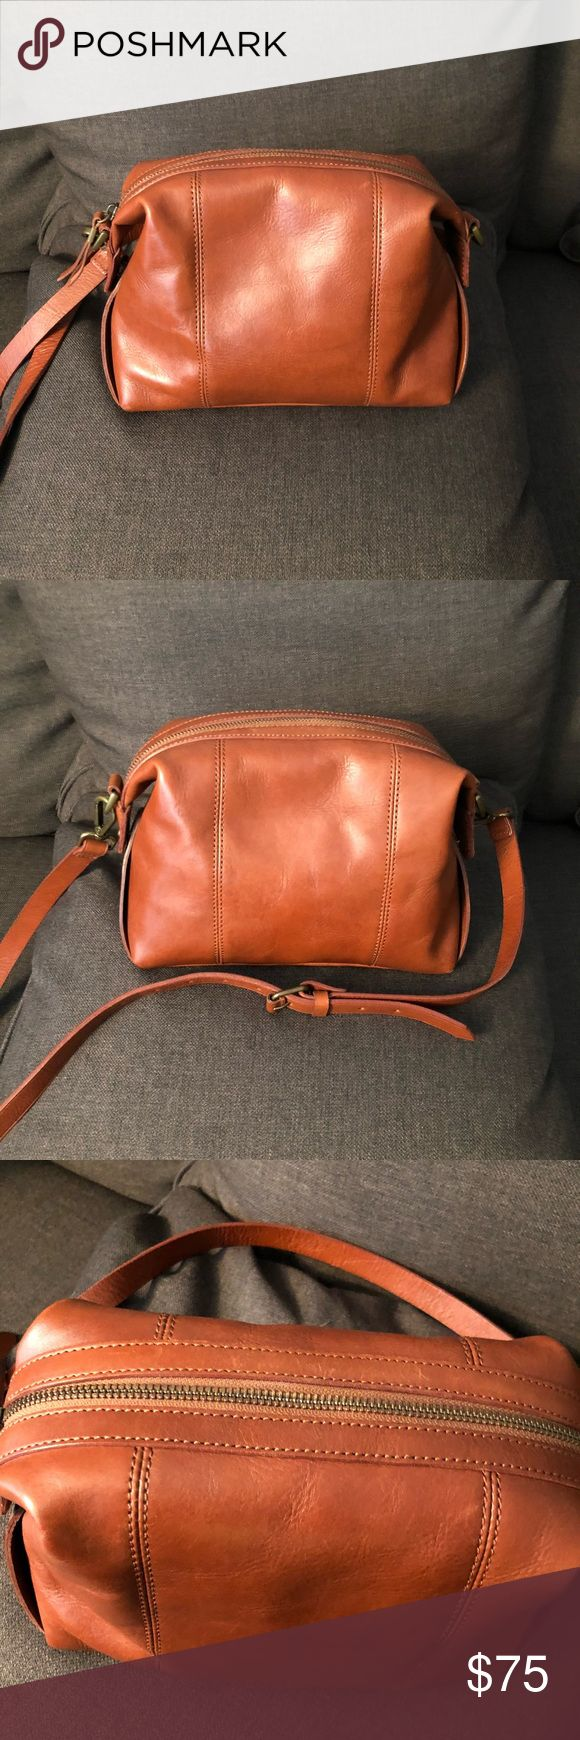 Madewell Mini Glasgow Satchel Crossbody One of my favorite mini bags I bought on Posh but trying to clean out my closet. Great condition, see pics for normal wear on corners and small scratch near bottom. Size included in pics as well. Madewell Bags Mini Bags